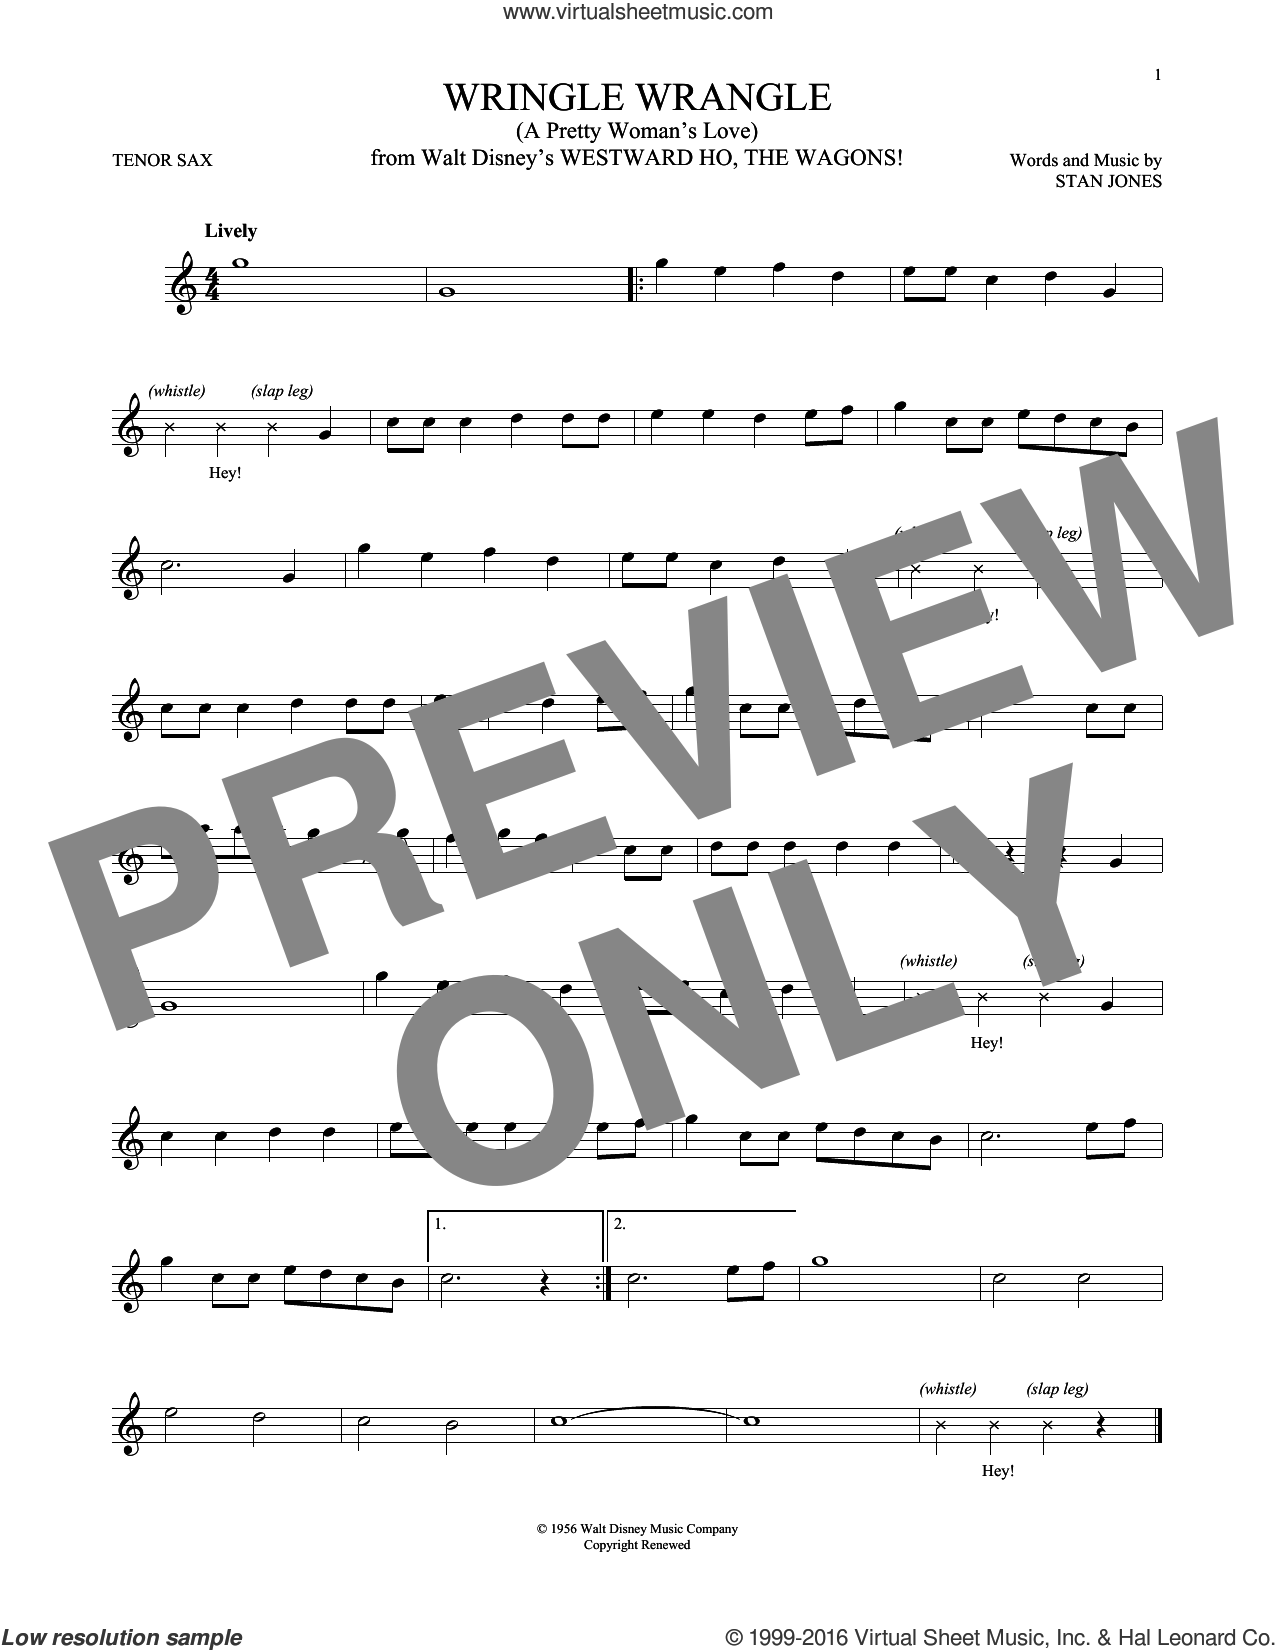 Wringle Wrangle (A Pretty Woman's Love) sheet music for tenor saxophone solo by Stan Jones. Score Image Preview.